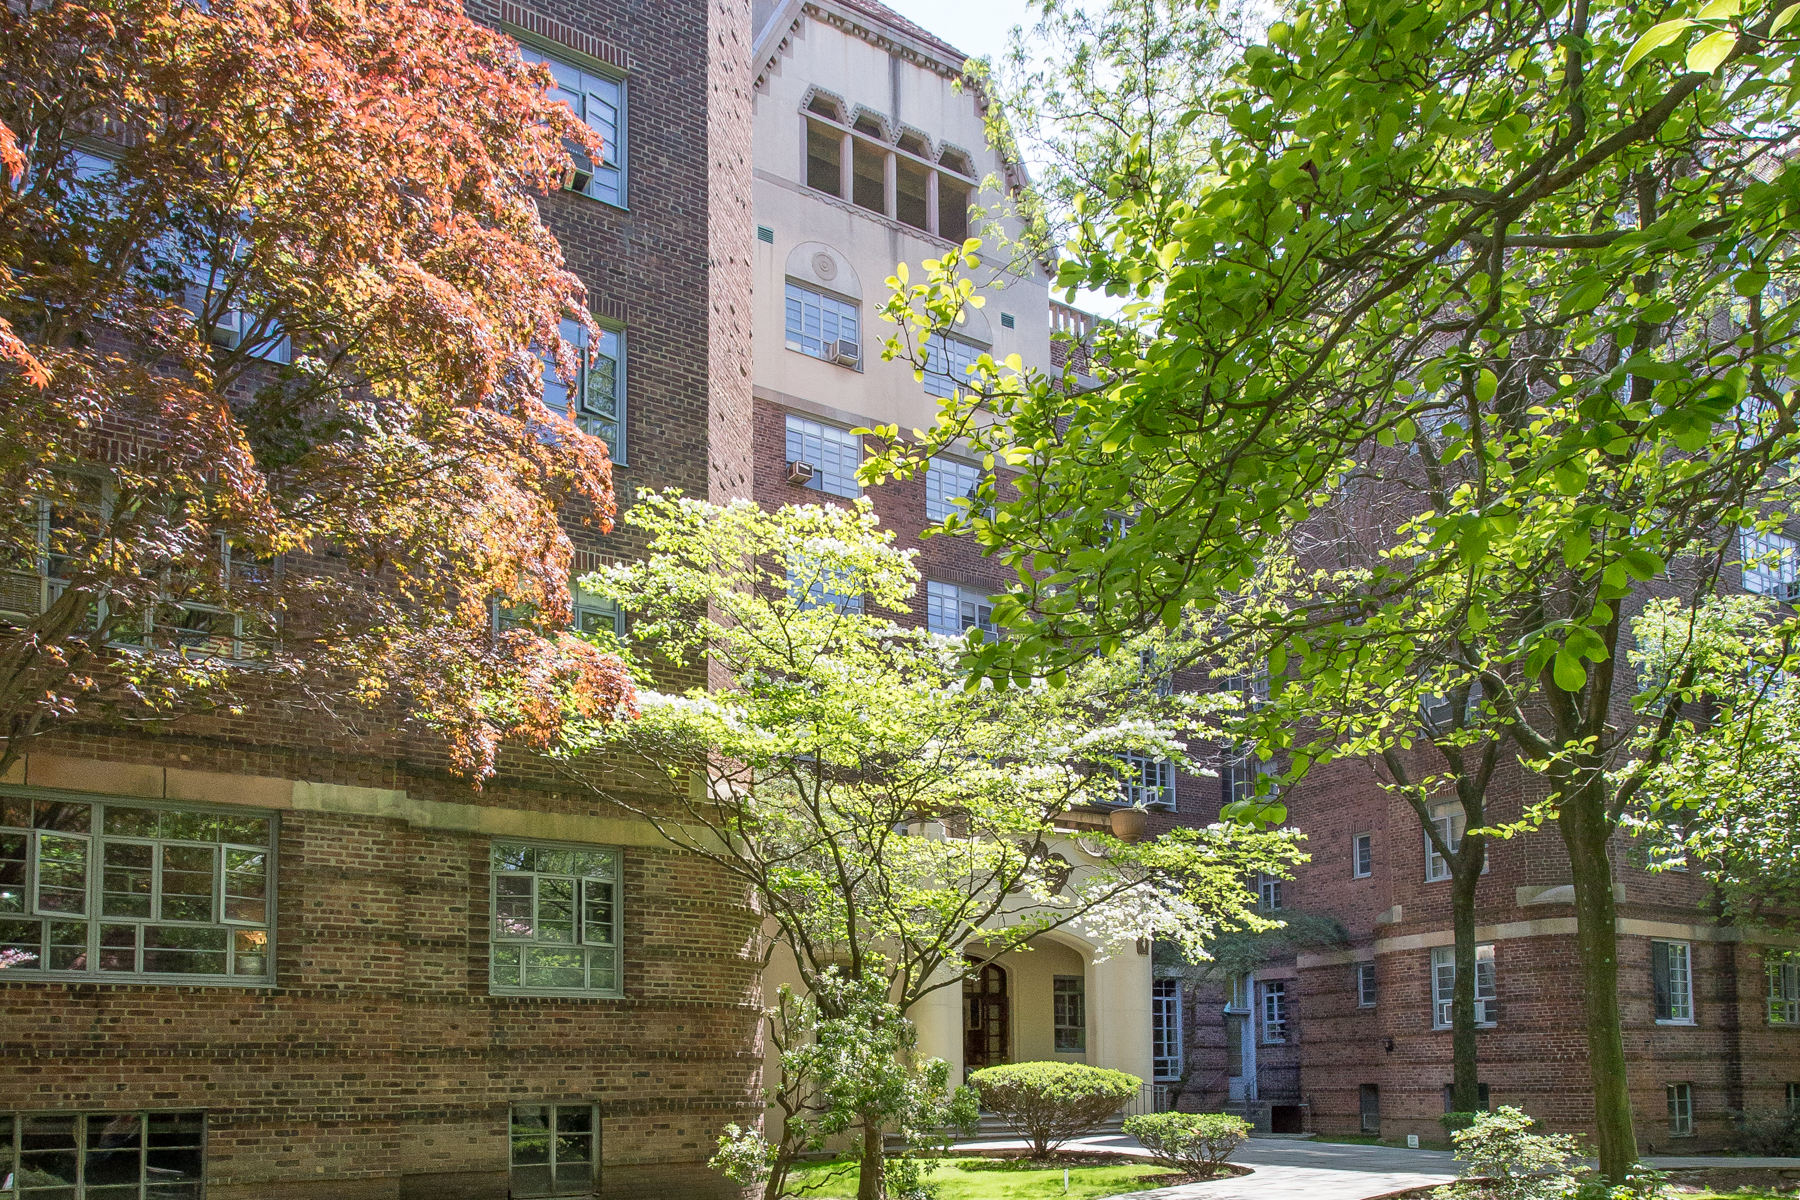 """Apartment for Rent at """"2 BEDROOM, 1 BATH IN FOREST HILLS GARDENS"""" Forest Hills, New York 11375 United States"""